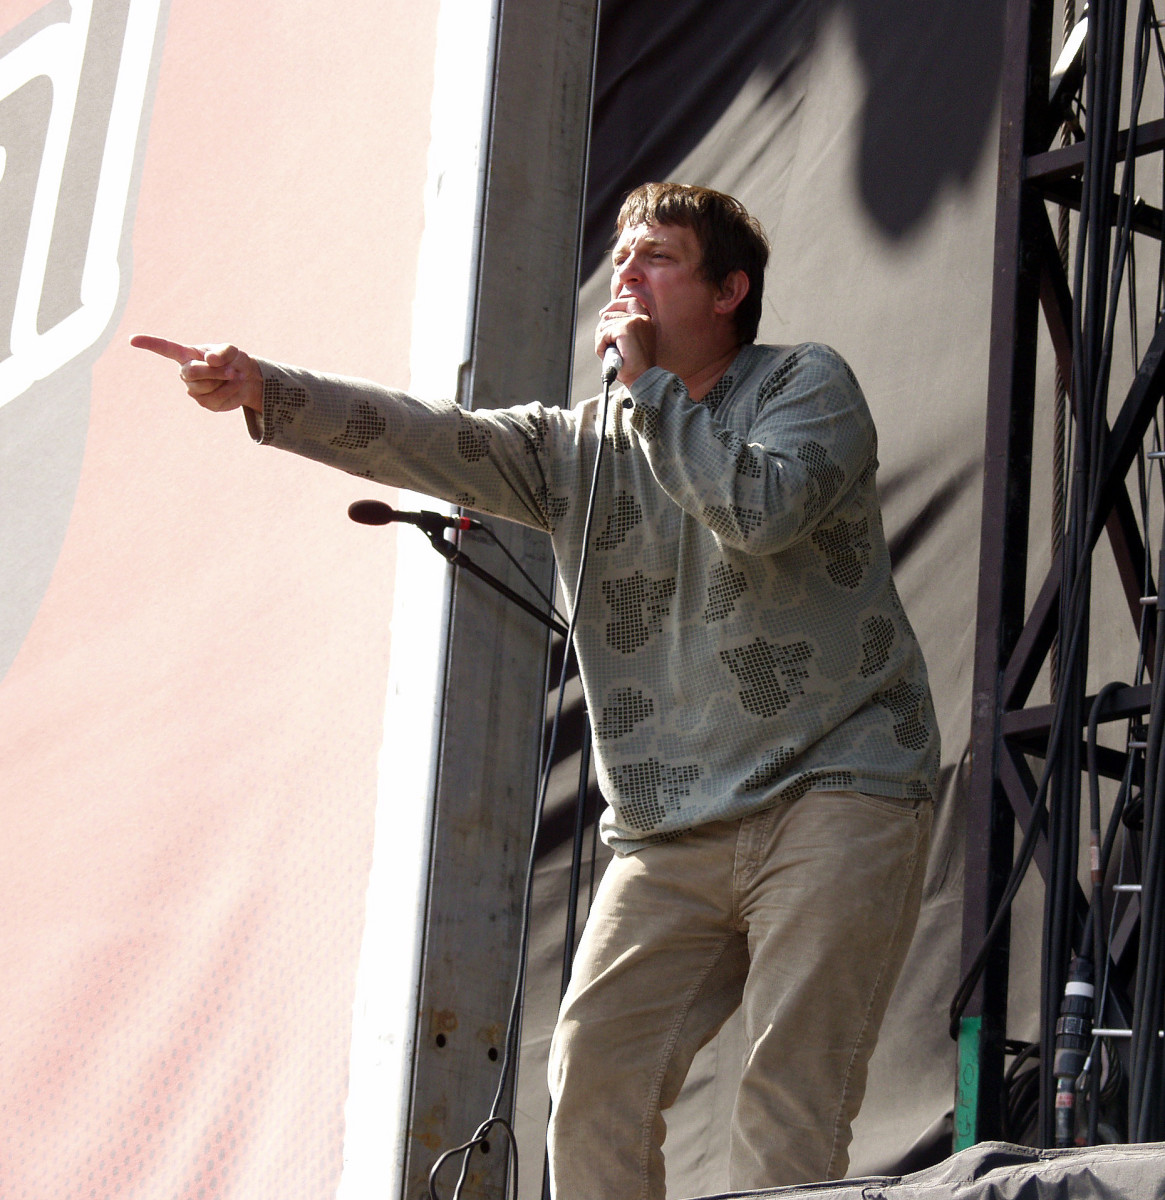 Tom Hingley of Inspiral Carpets performing at V Fest in 2003.